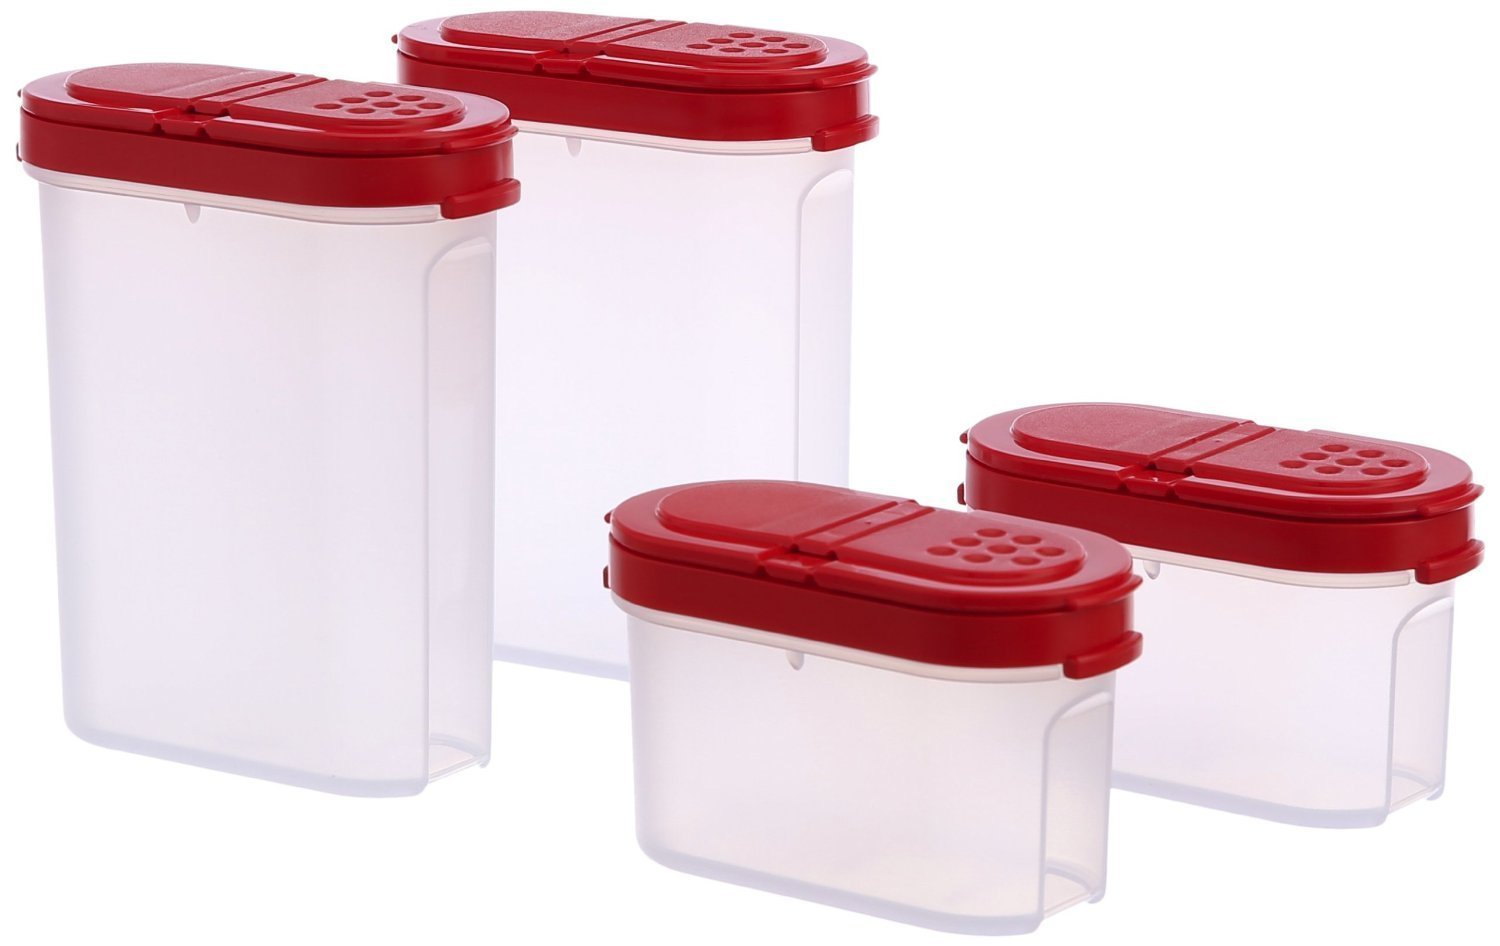 TP-540-T128 Tupperware Modular Spice Shakers Set of 4 finaldeals COMINHKPR56838